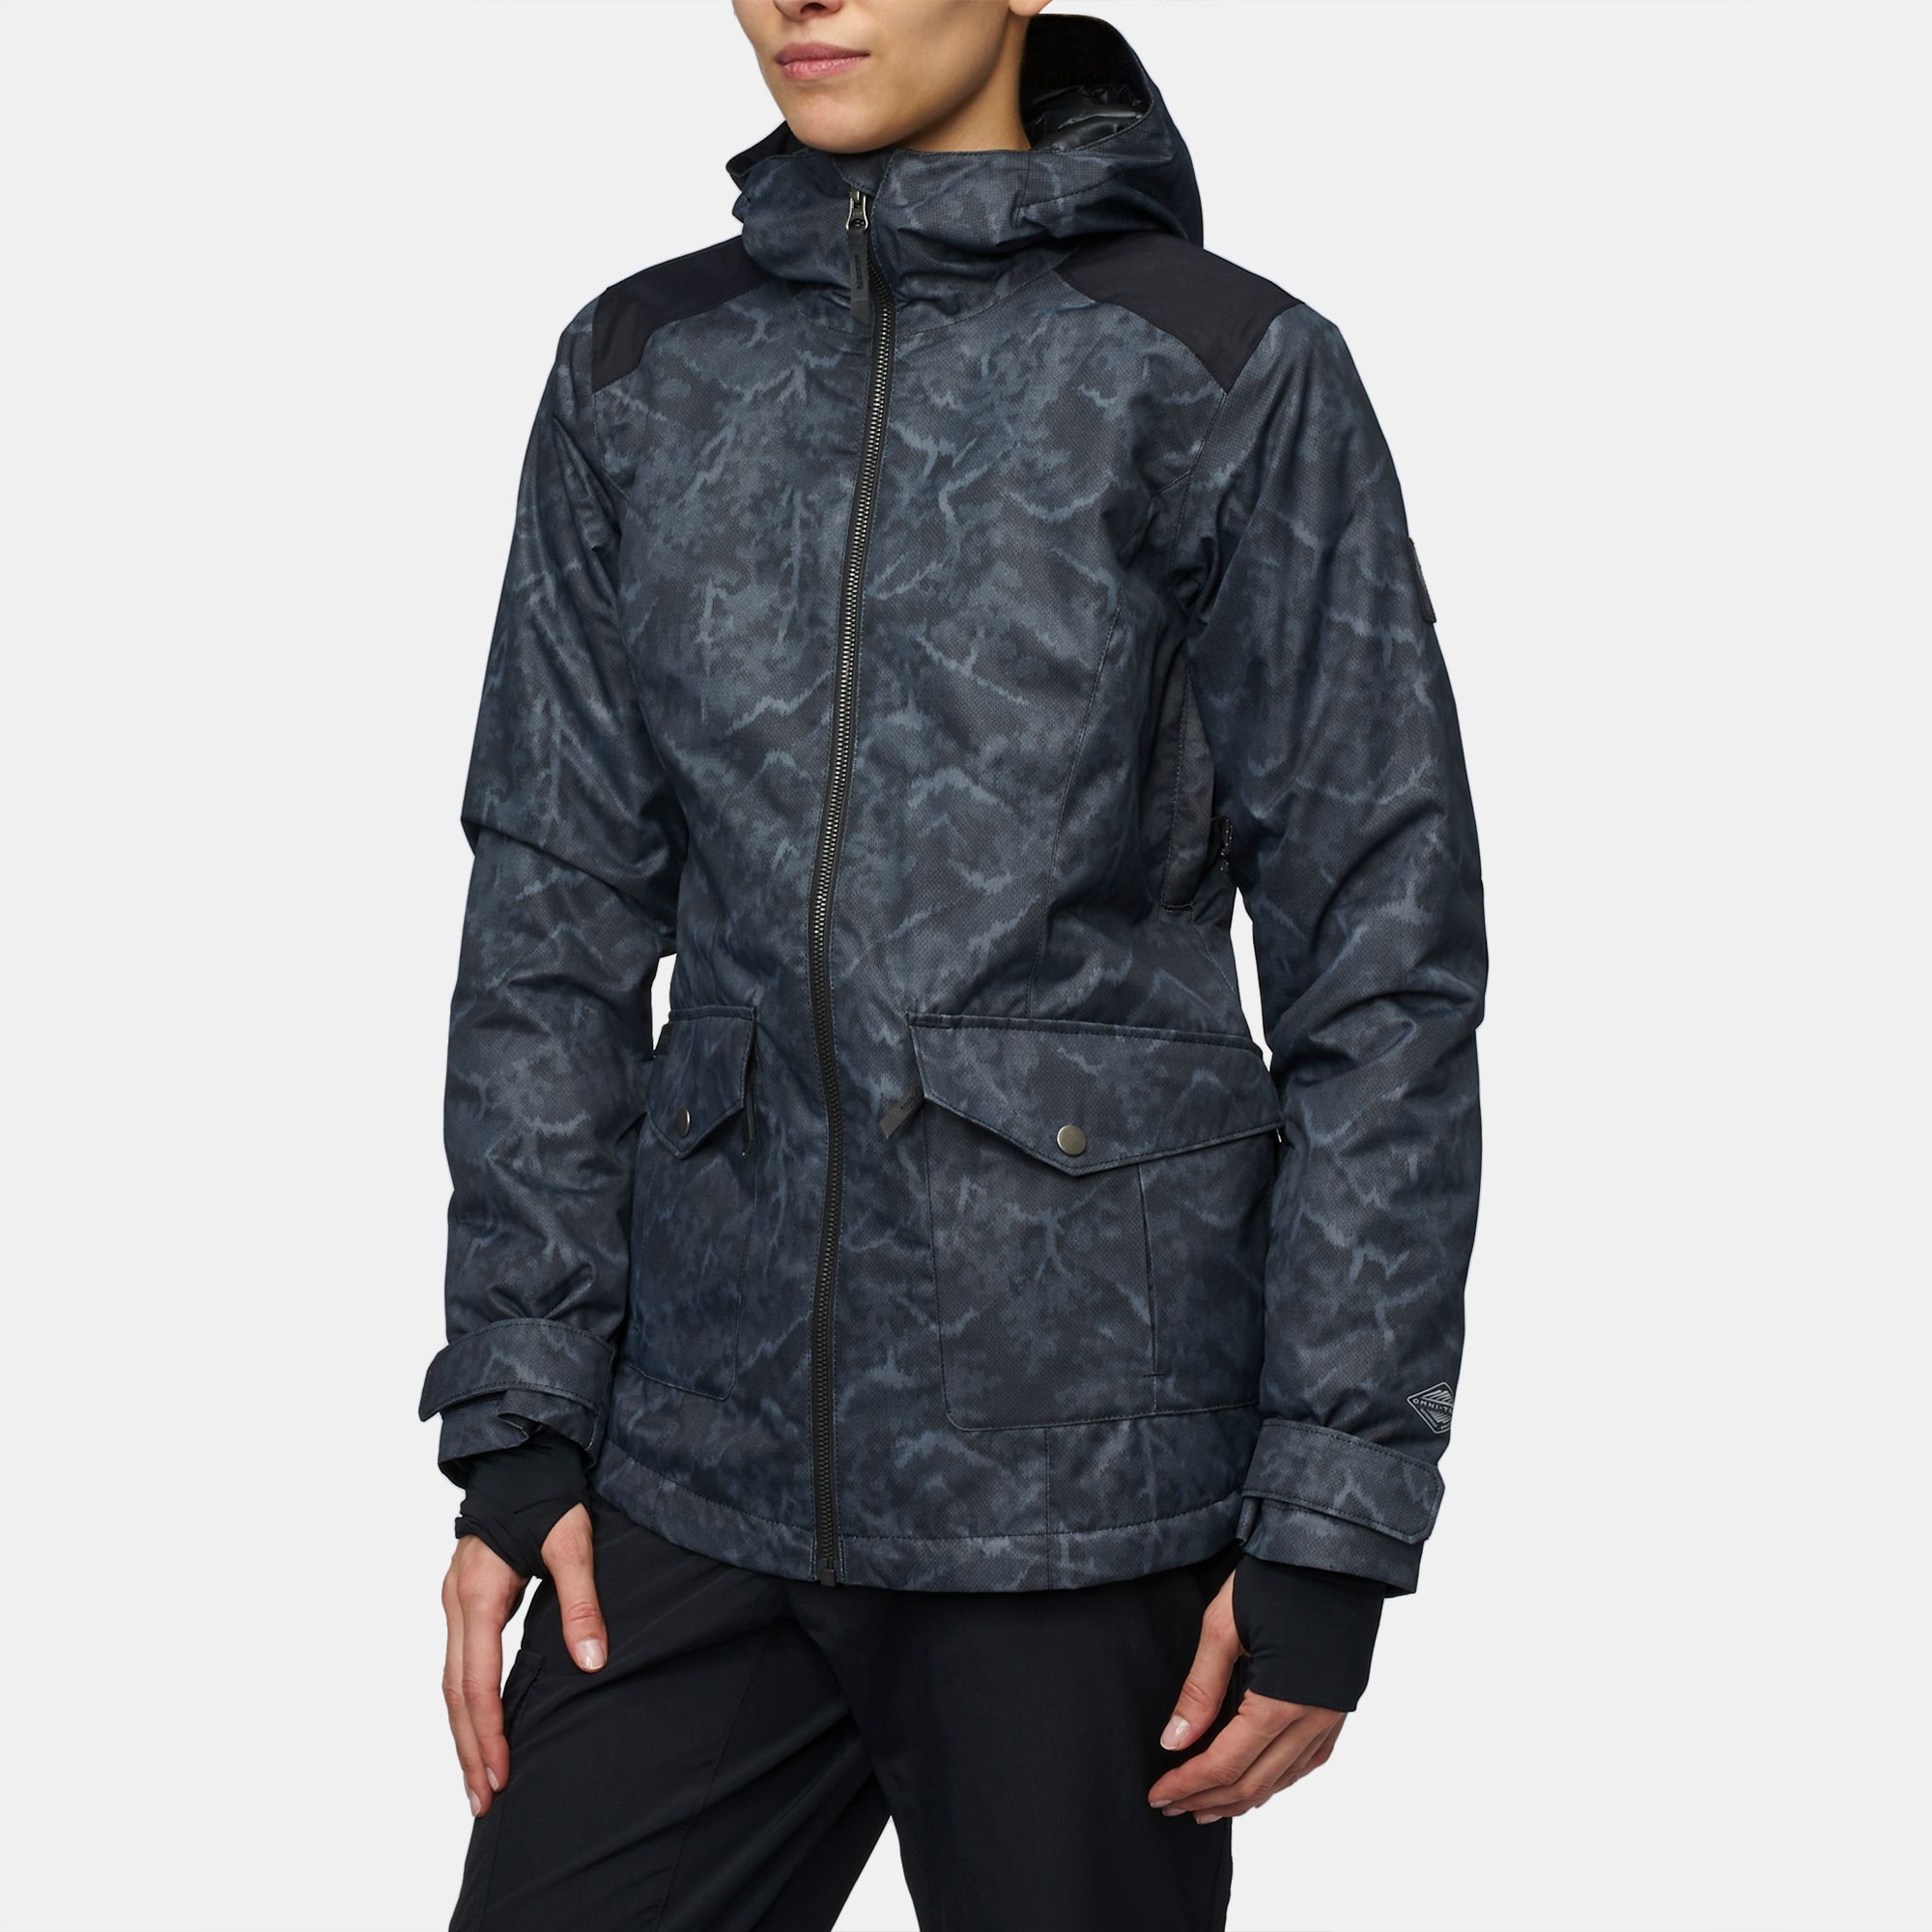 Shop Black Columbia Catacomb Crest Insulated Parka Jacket for Womens ... 6c42f86aa